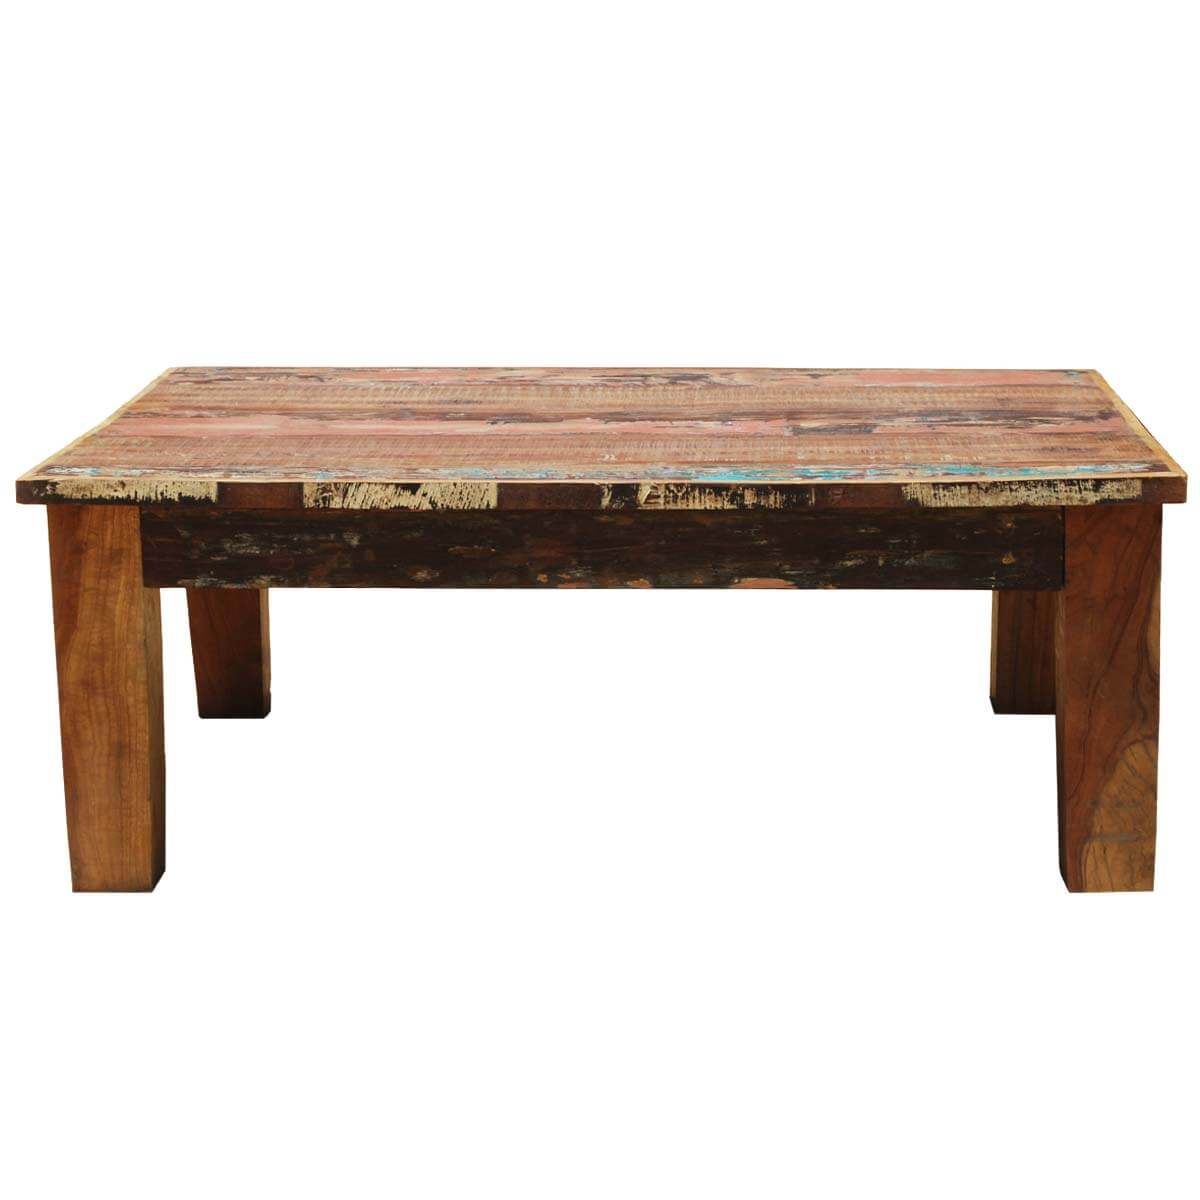 Appalachian rustic mixed reclaimed wood coffee table